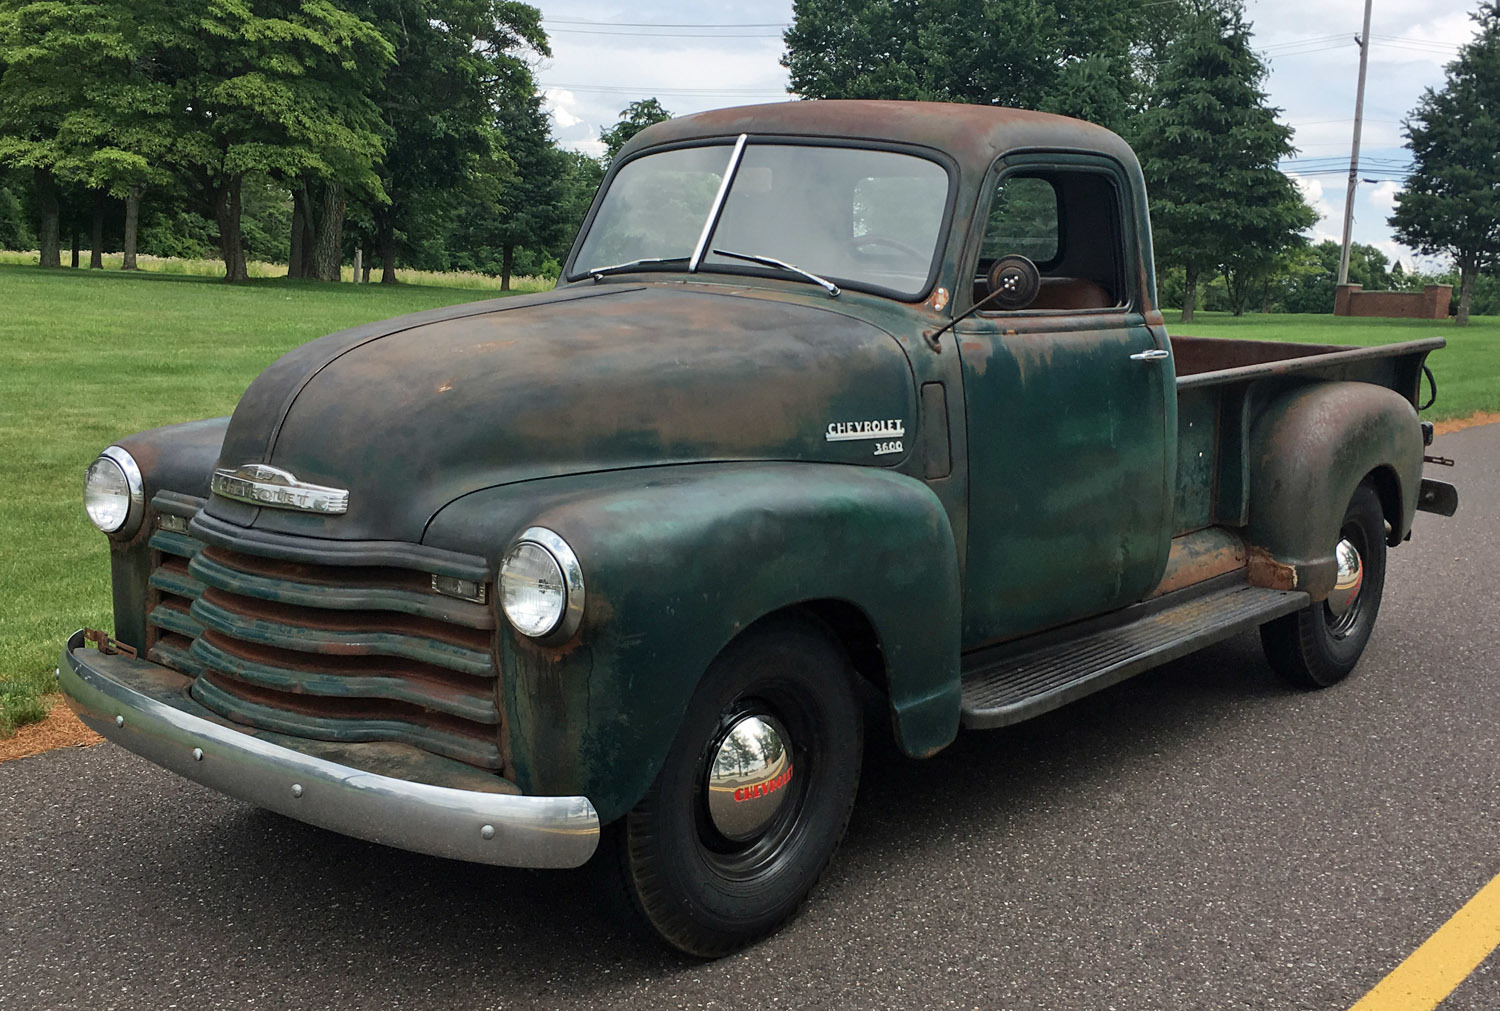 Truck chevy 1980 truck : 1949 Chevrolet 3-Window Pickup | Connors Motorcar Company